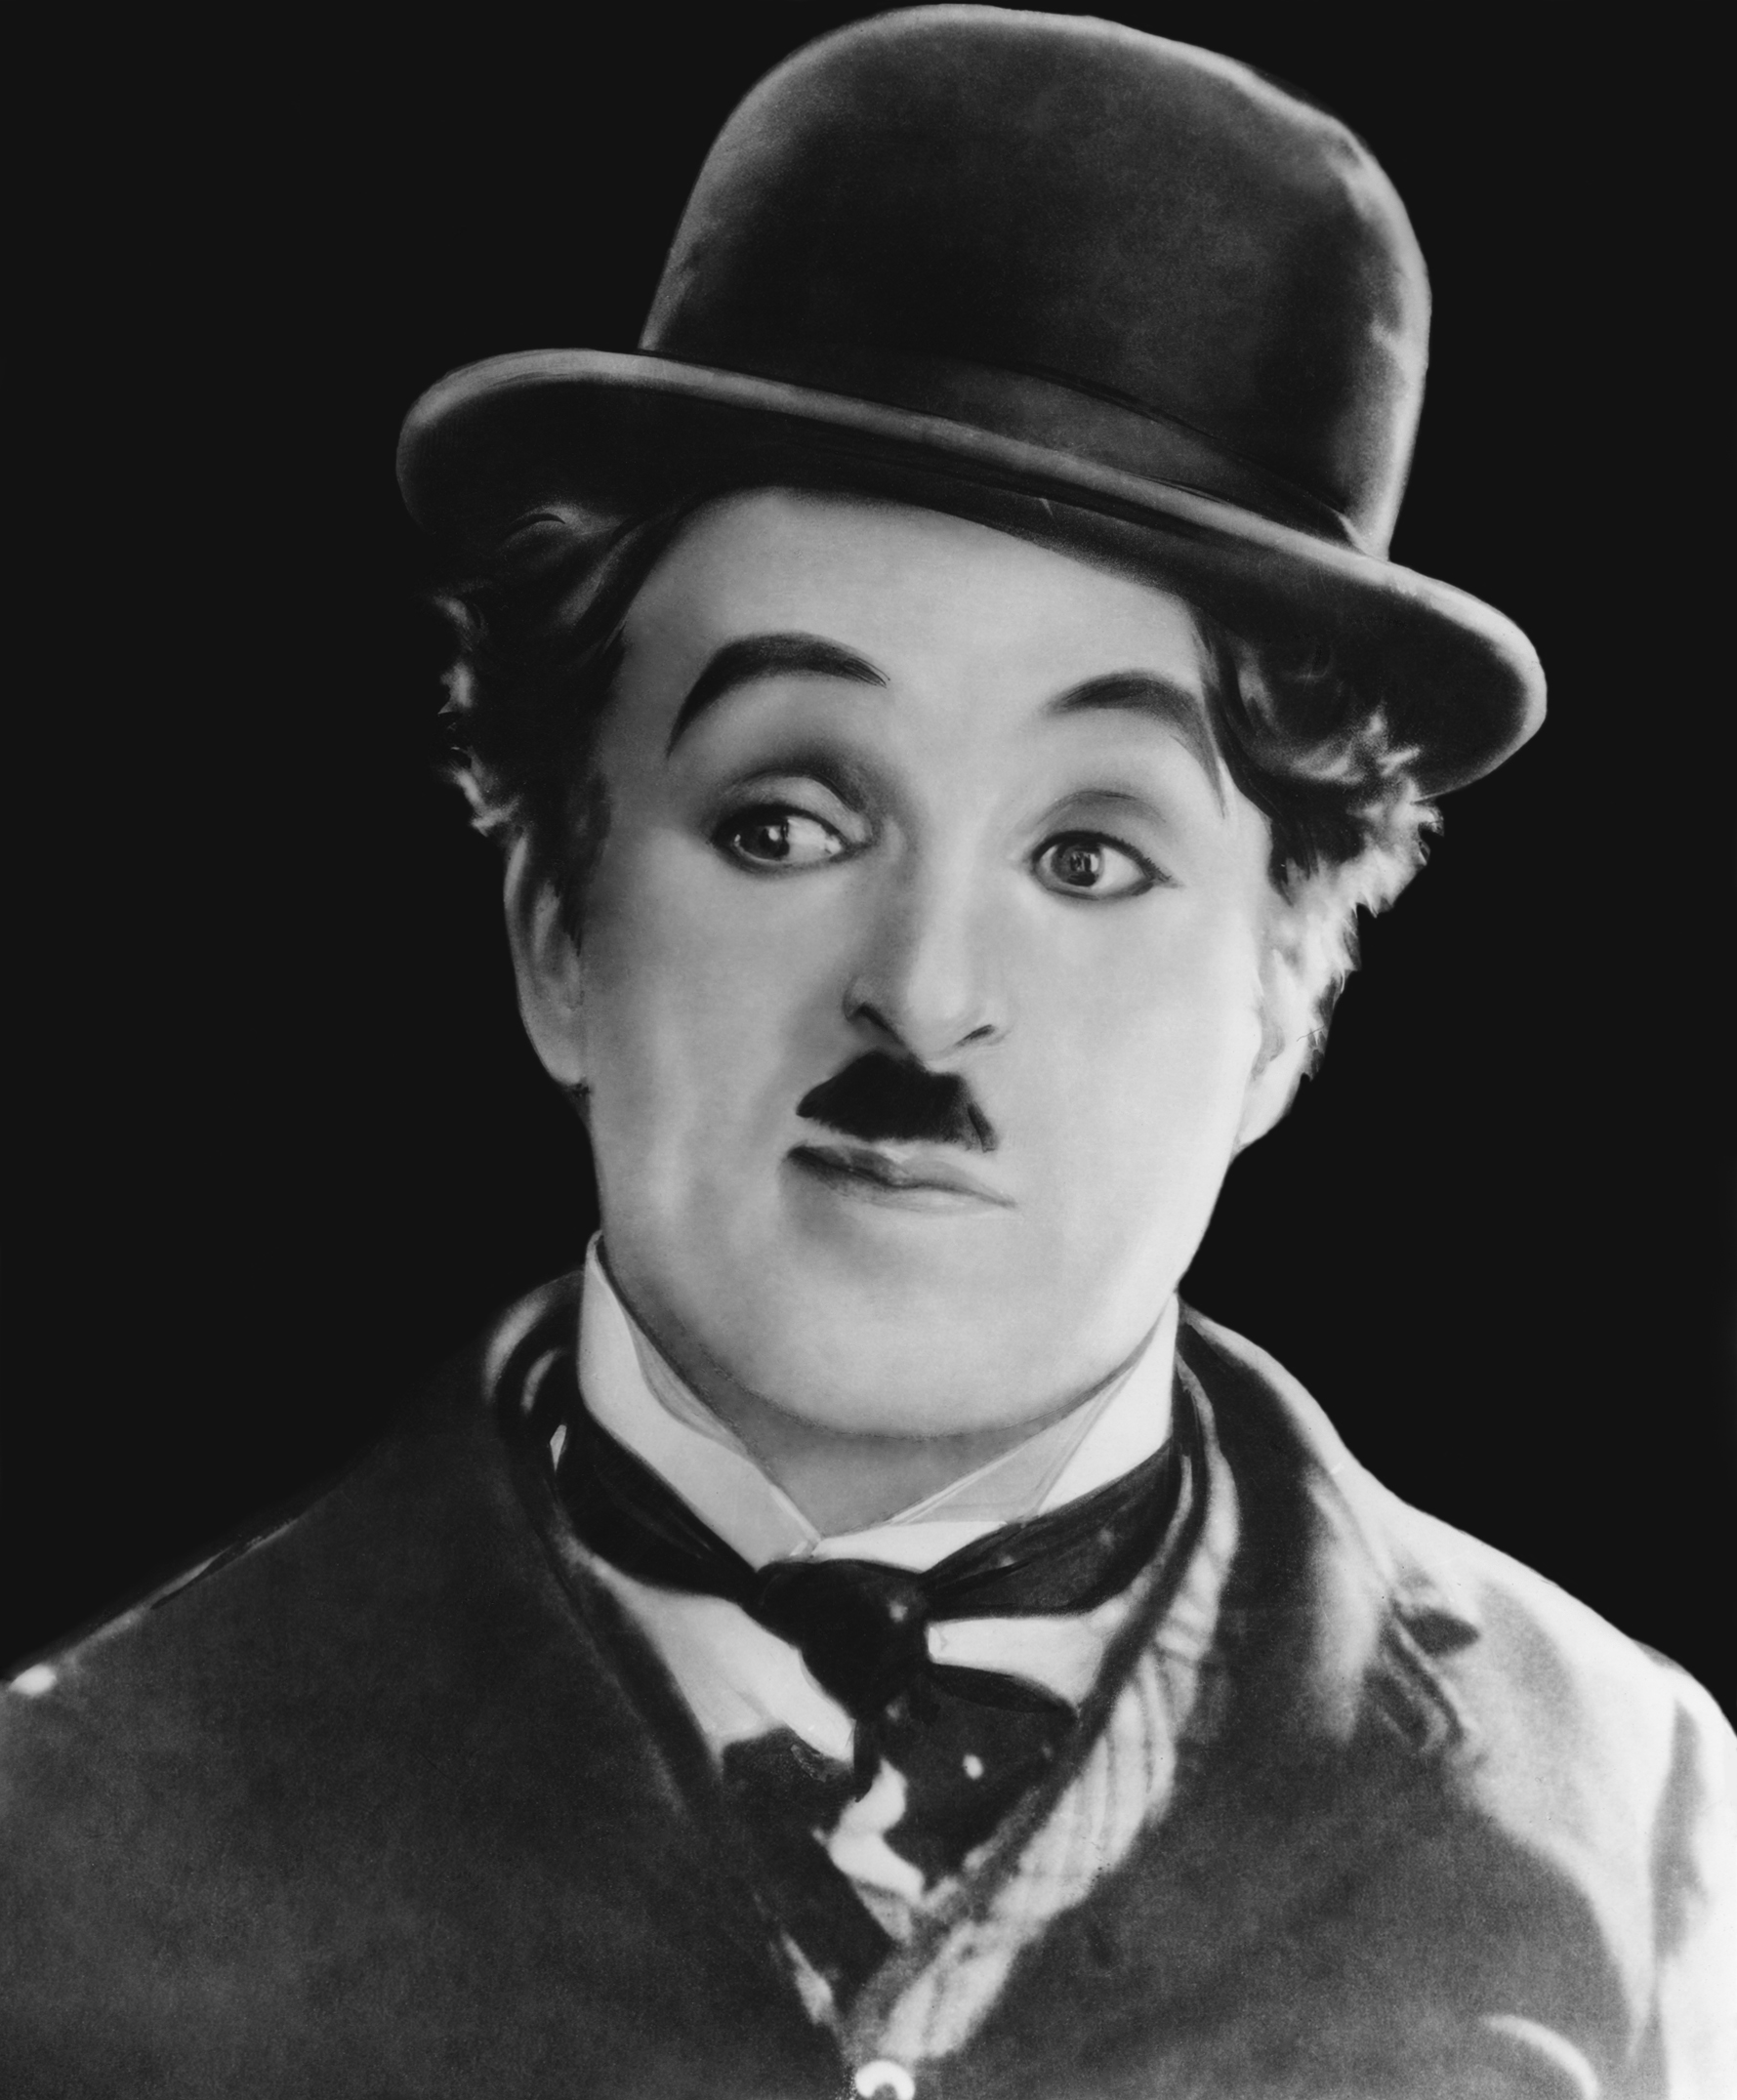 Charles Chaplin - Images